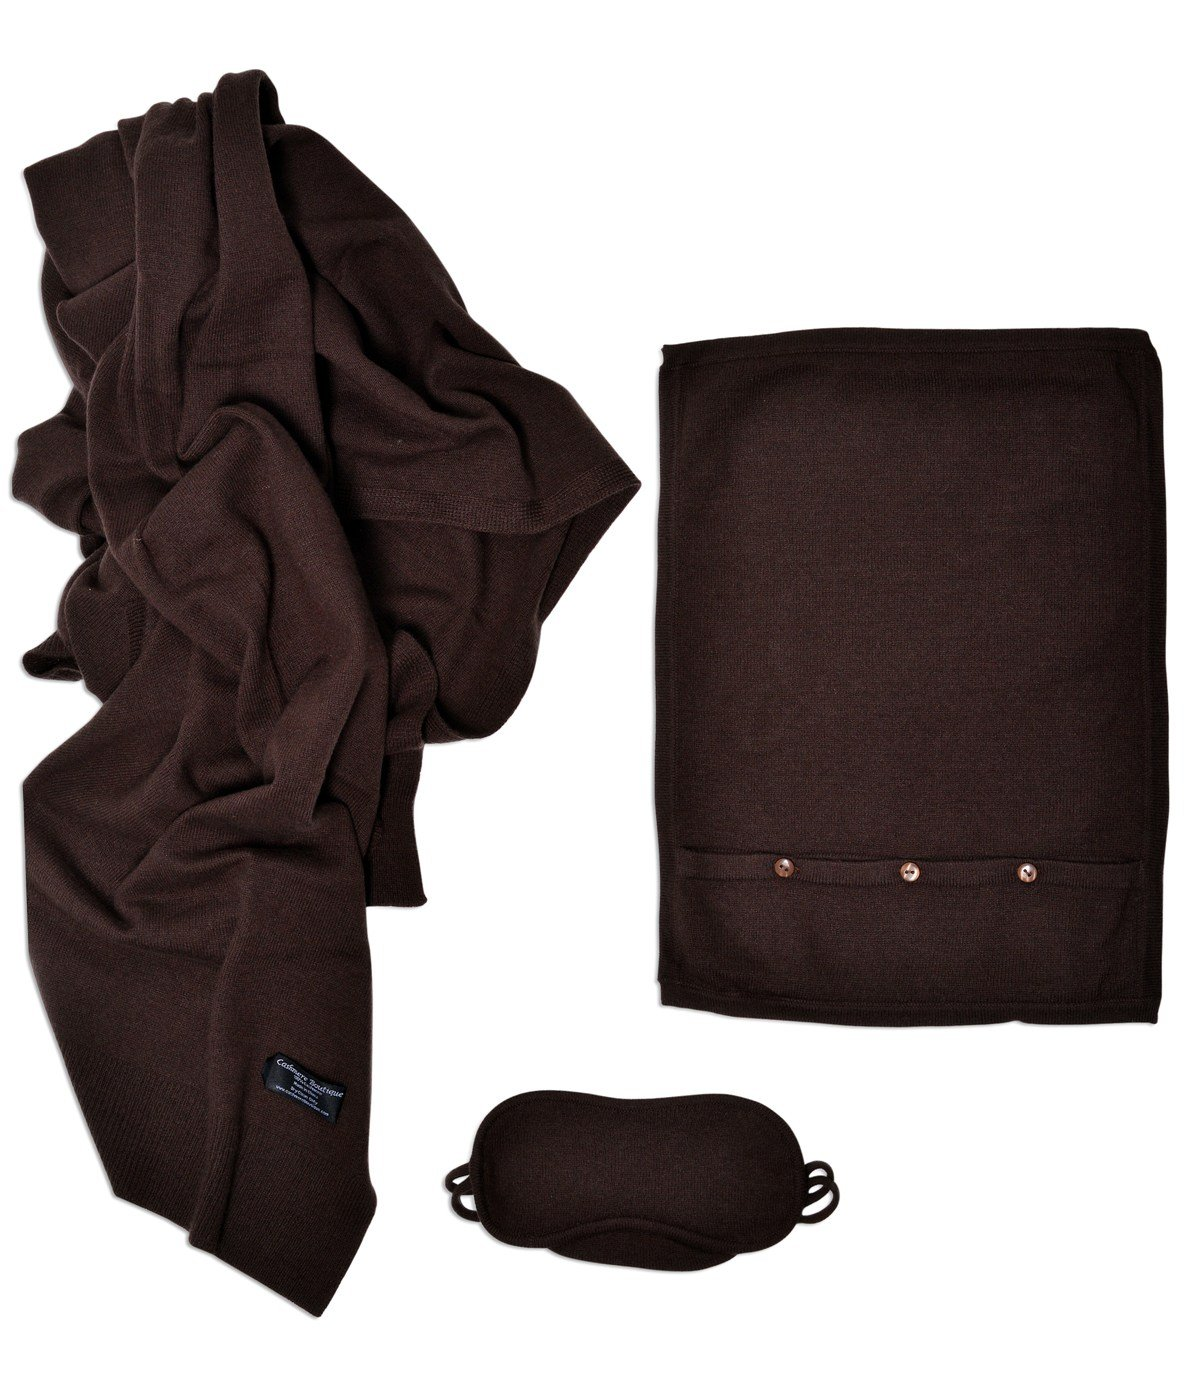 (Mocha) - Cashmere Boutique Cashmere Travel Throw Set B002U559T0 モカ